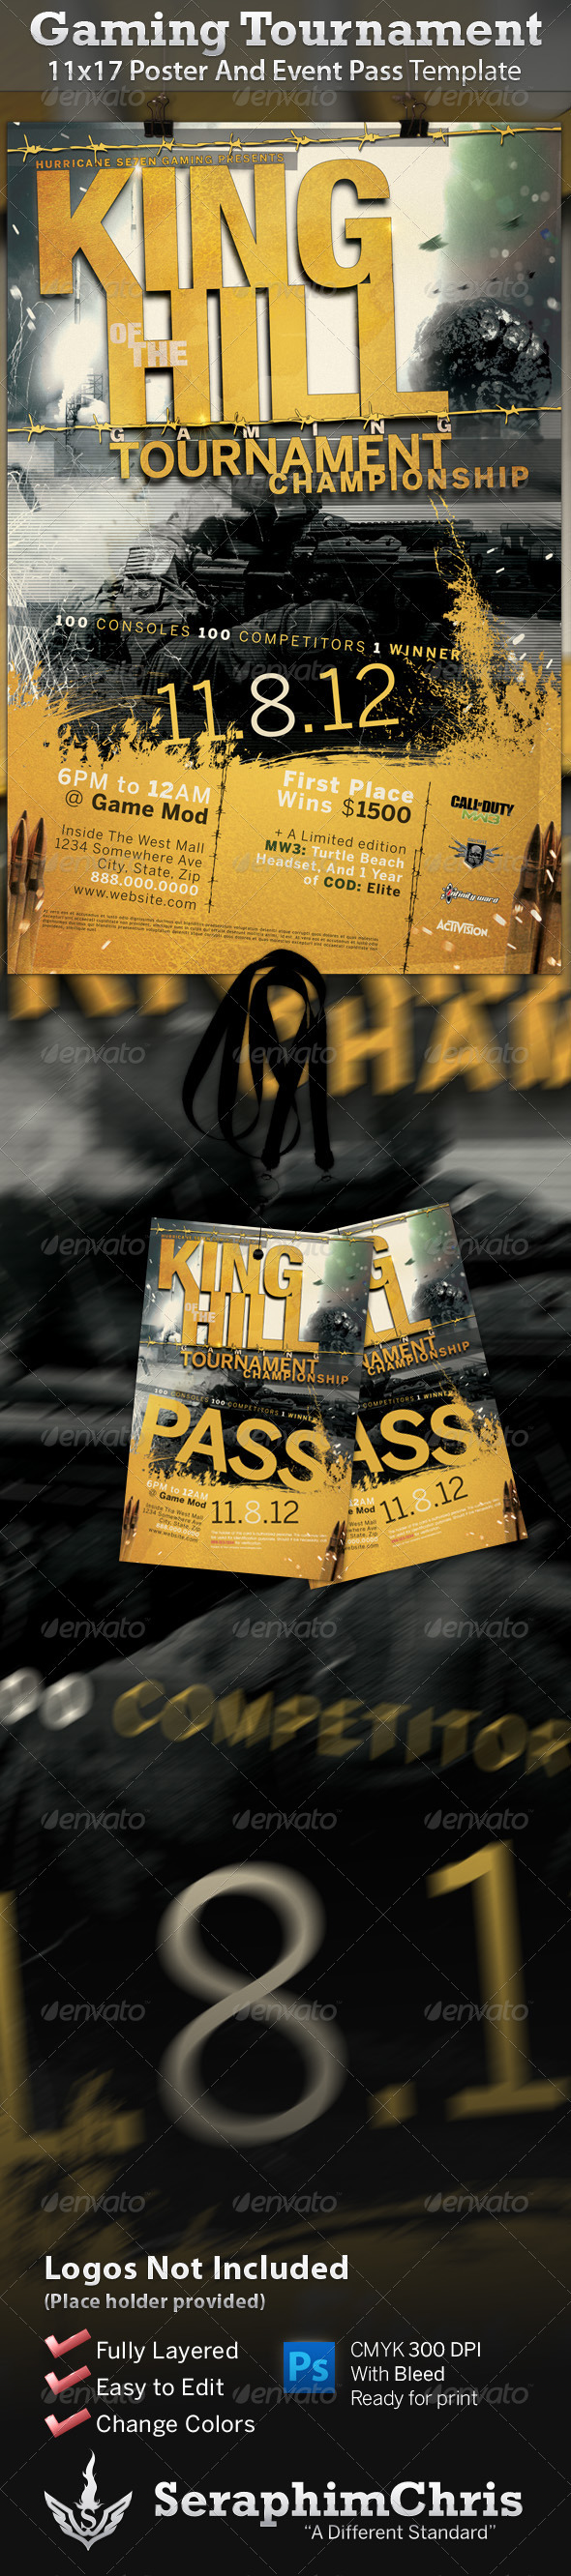 GraphicRiver King of The Hill Gaming Poster and Event Pass 758310